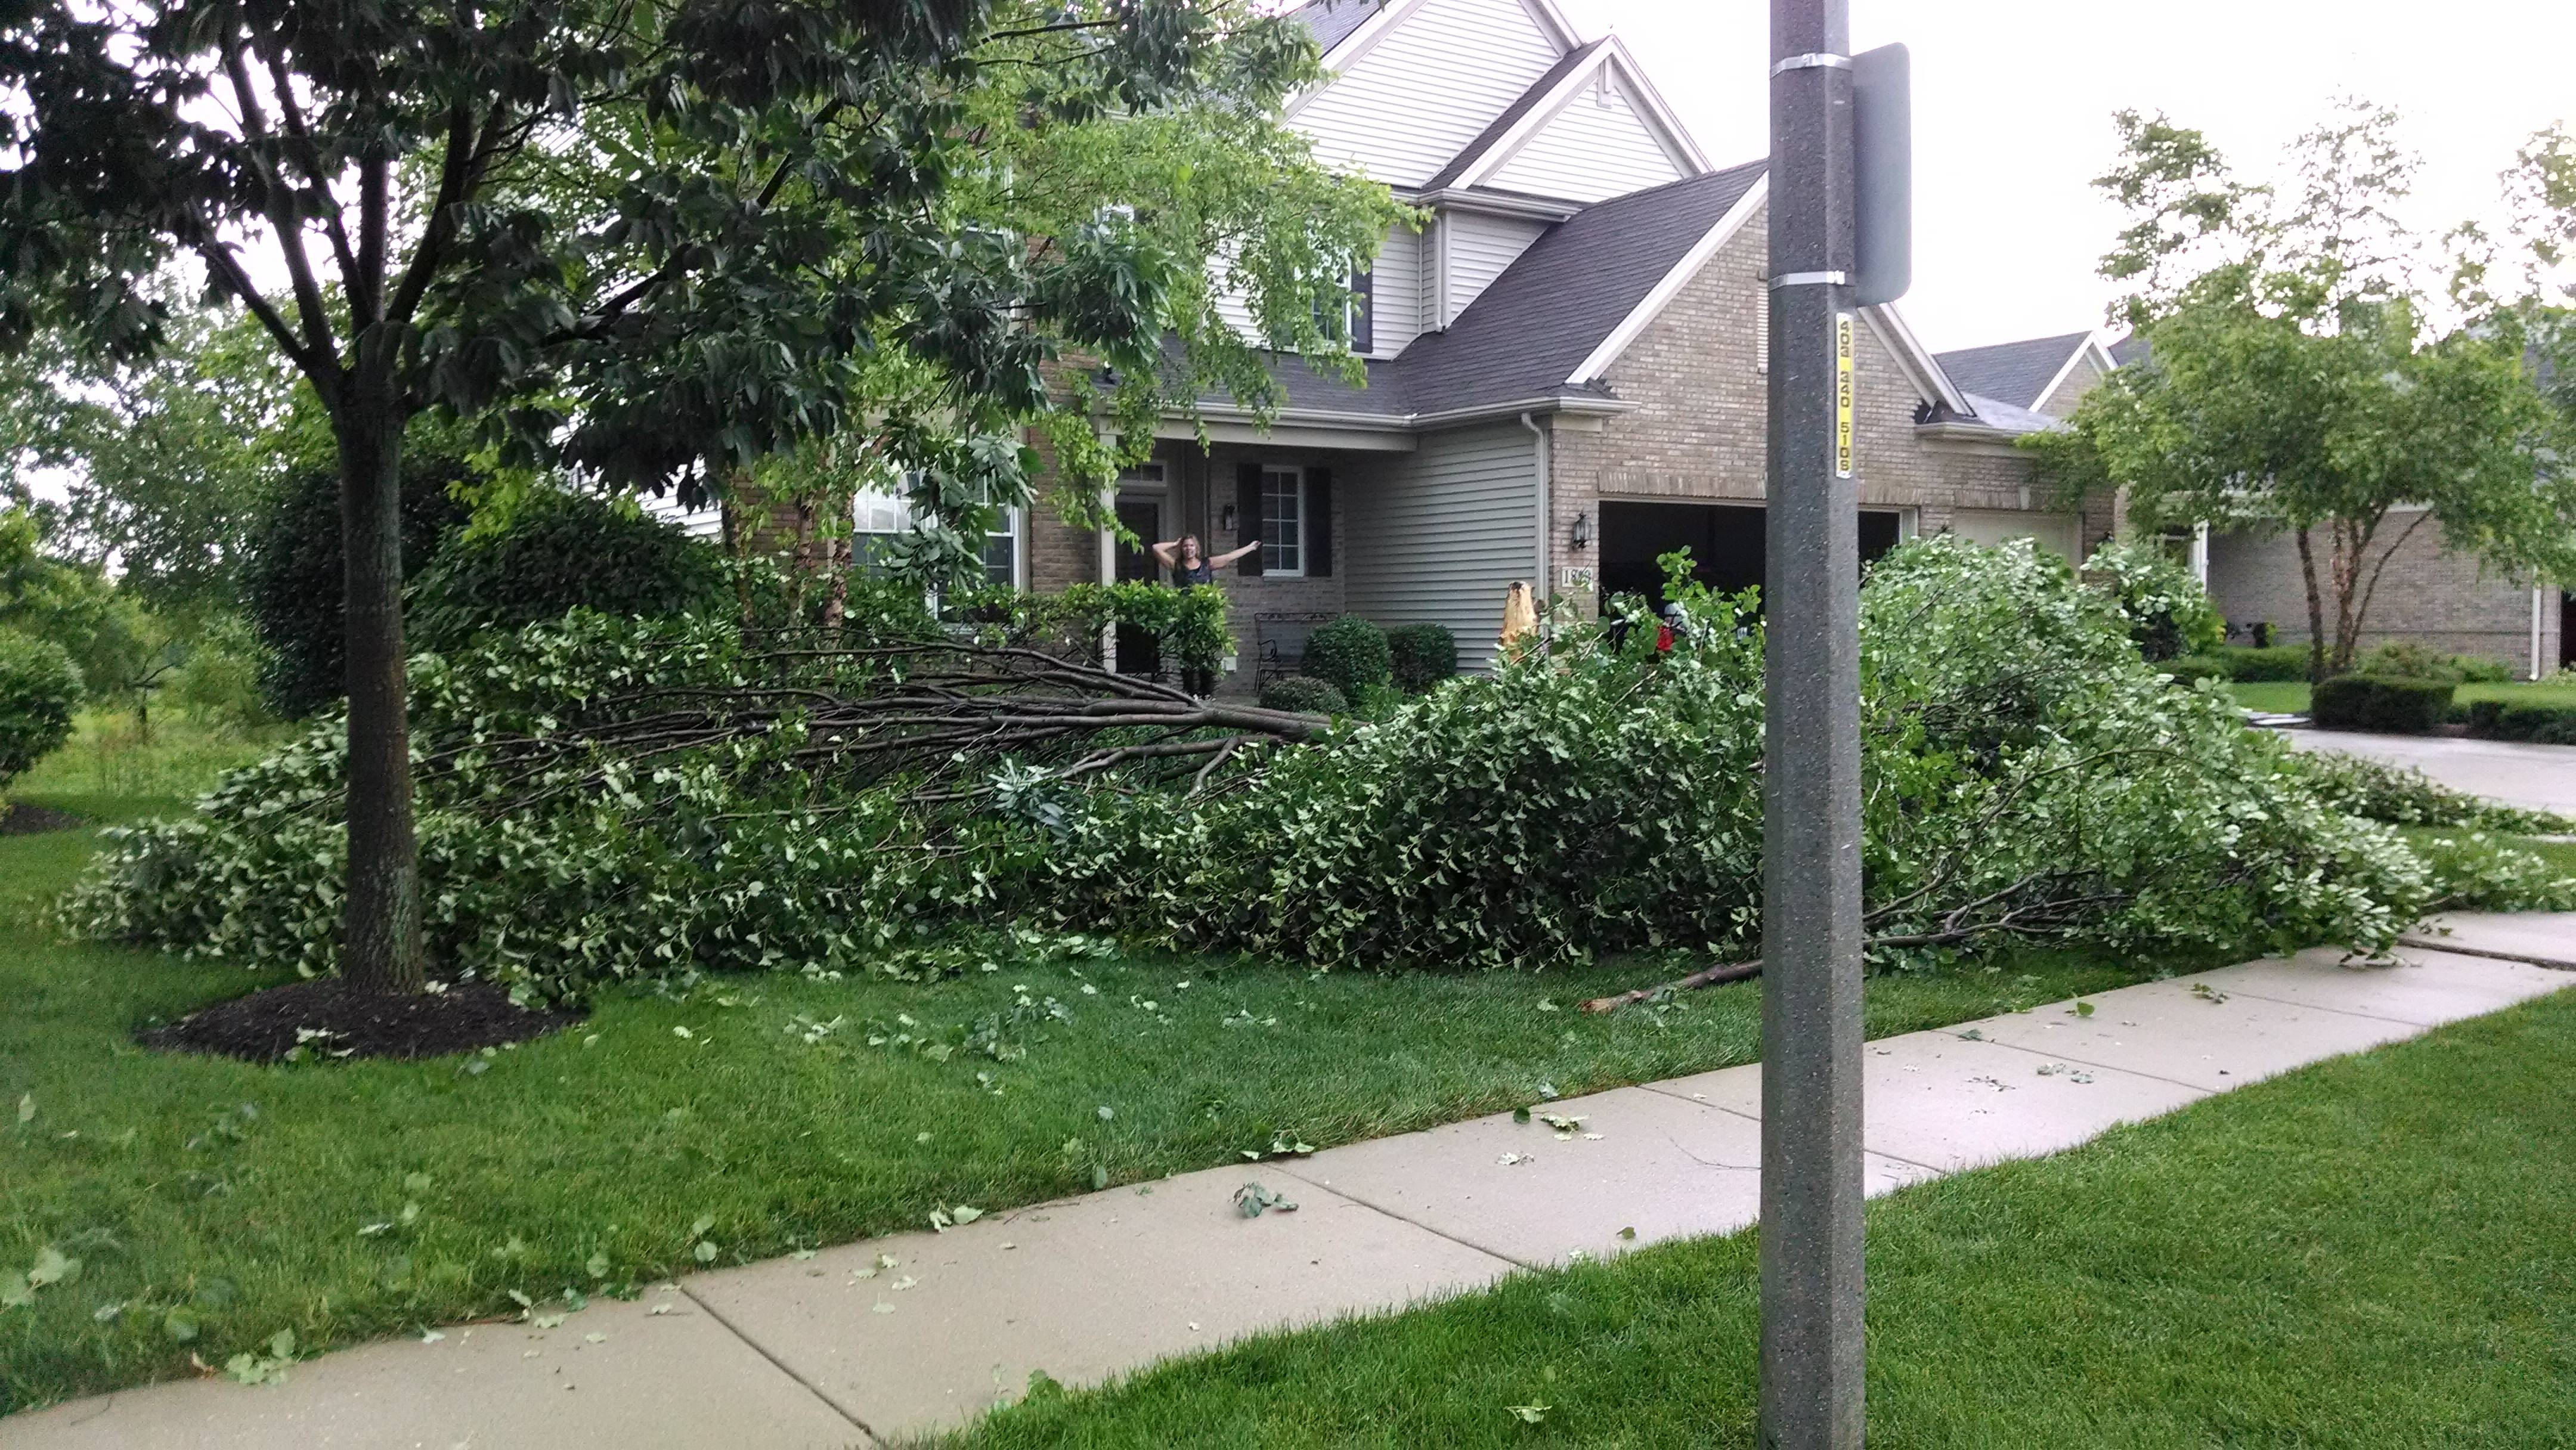 Storms toppled a tree Saturday in the Orchard Hills subdivision in Wauconda.